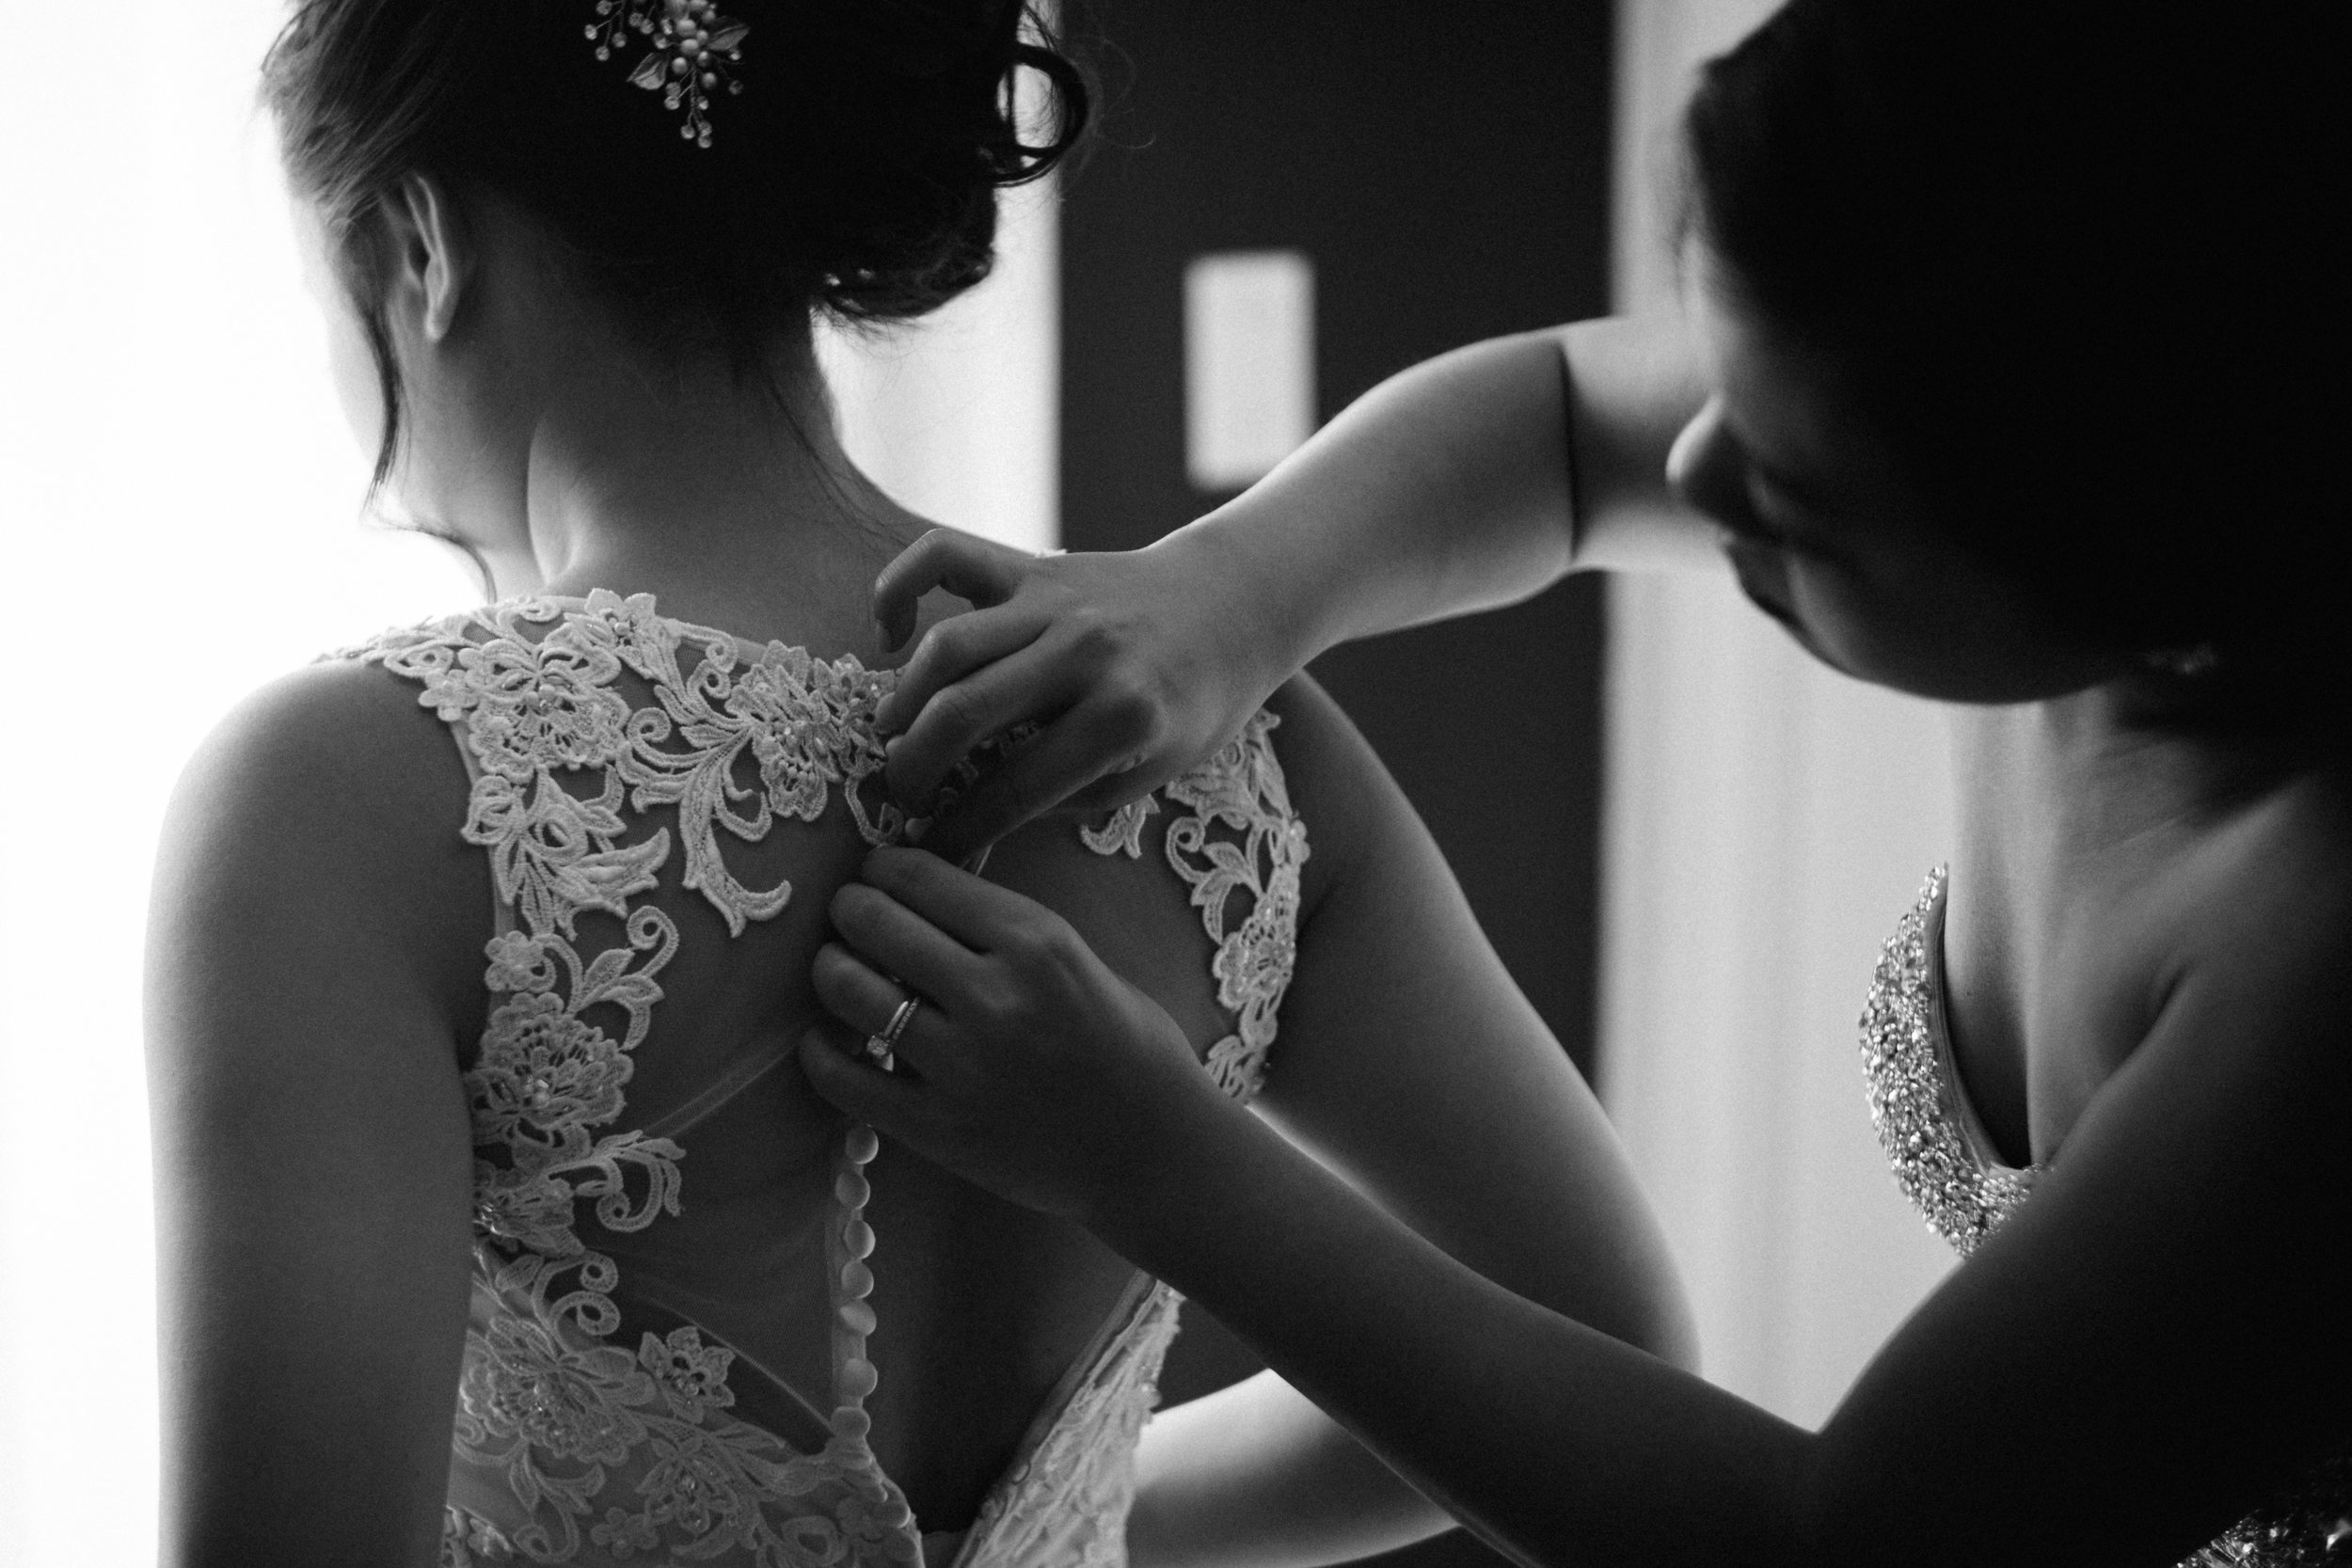 ShadowShinePictures-VeronicaToddKorthals-Ann-Arbor-Wedding-Photography-16.jpg